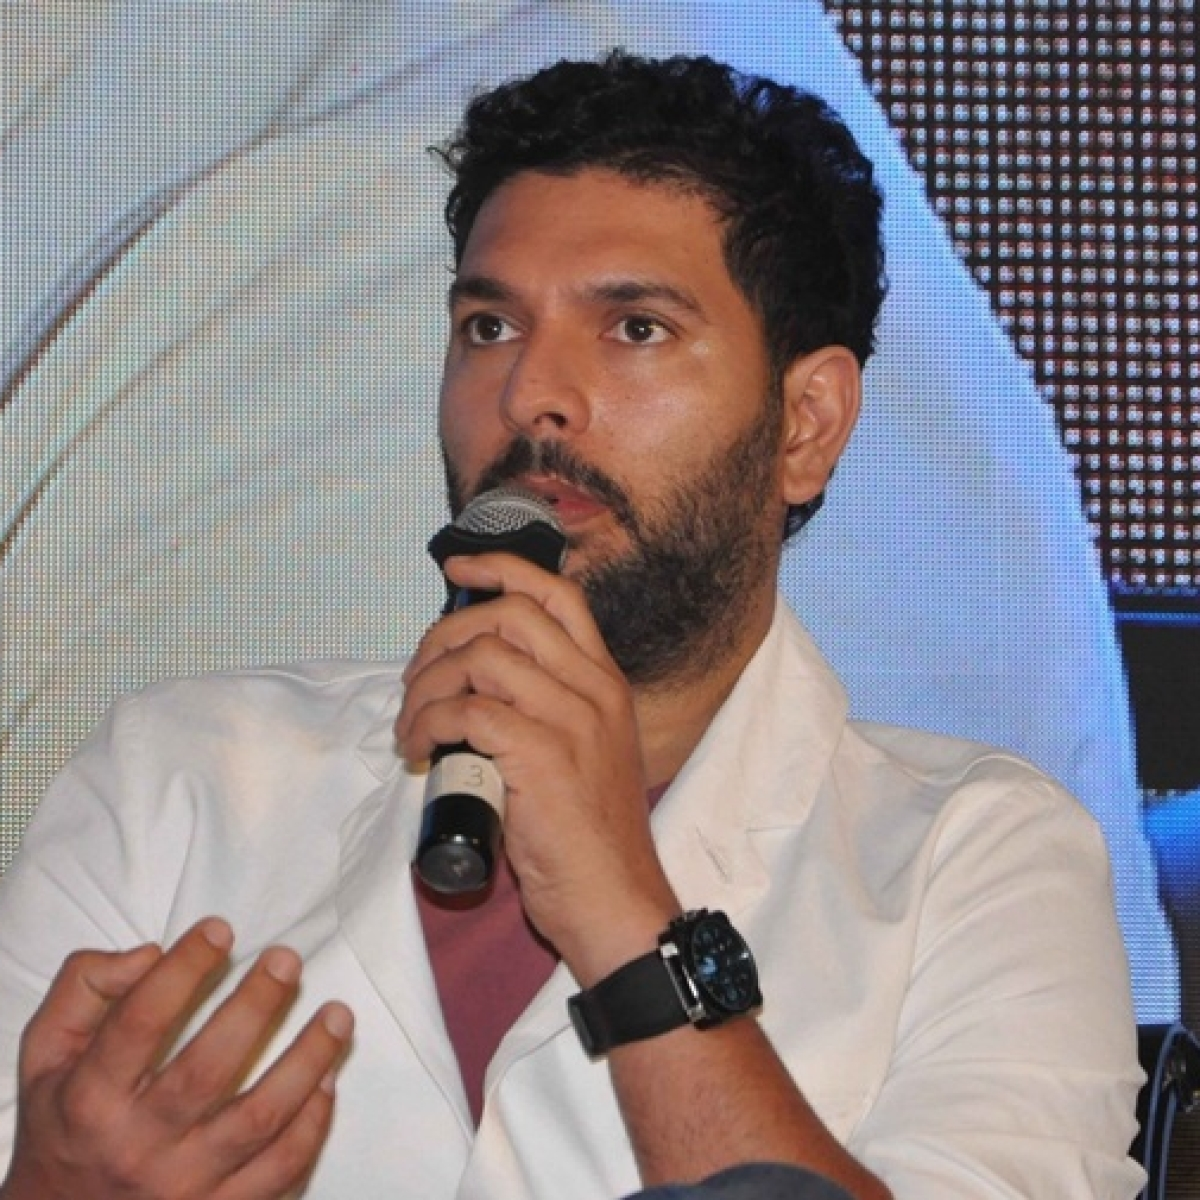 FIR against Yuvraj Singh over casteist remarks against Yuzvendra Chahal